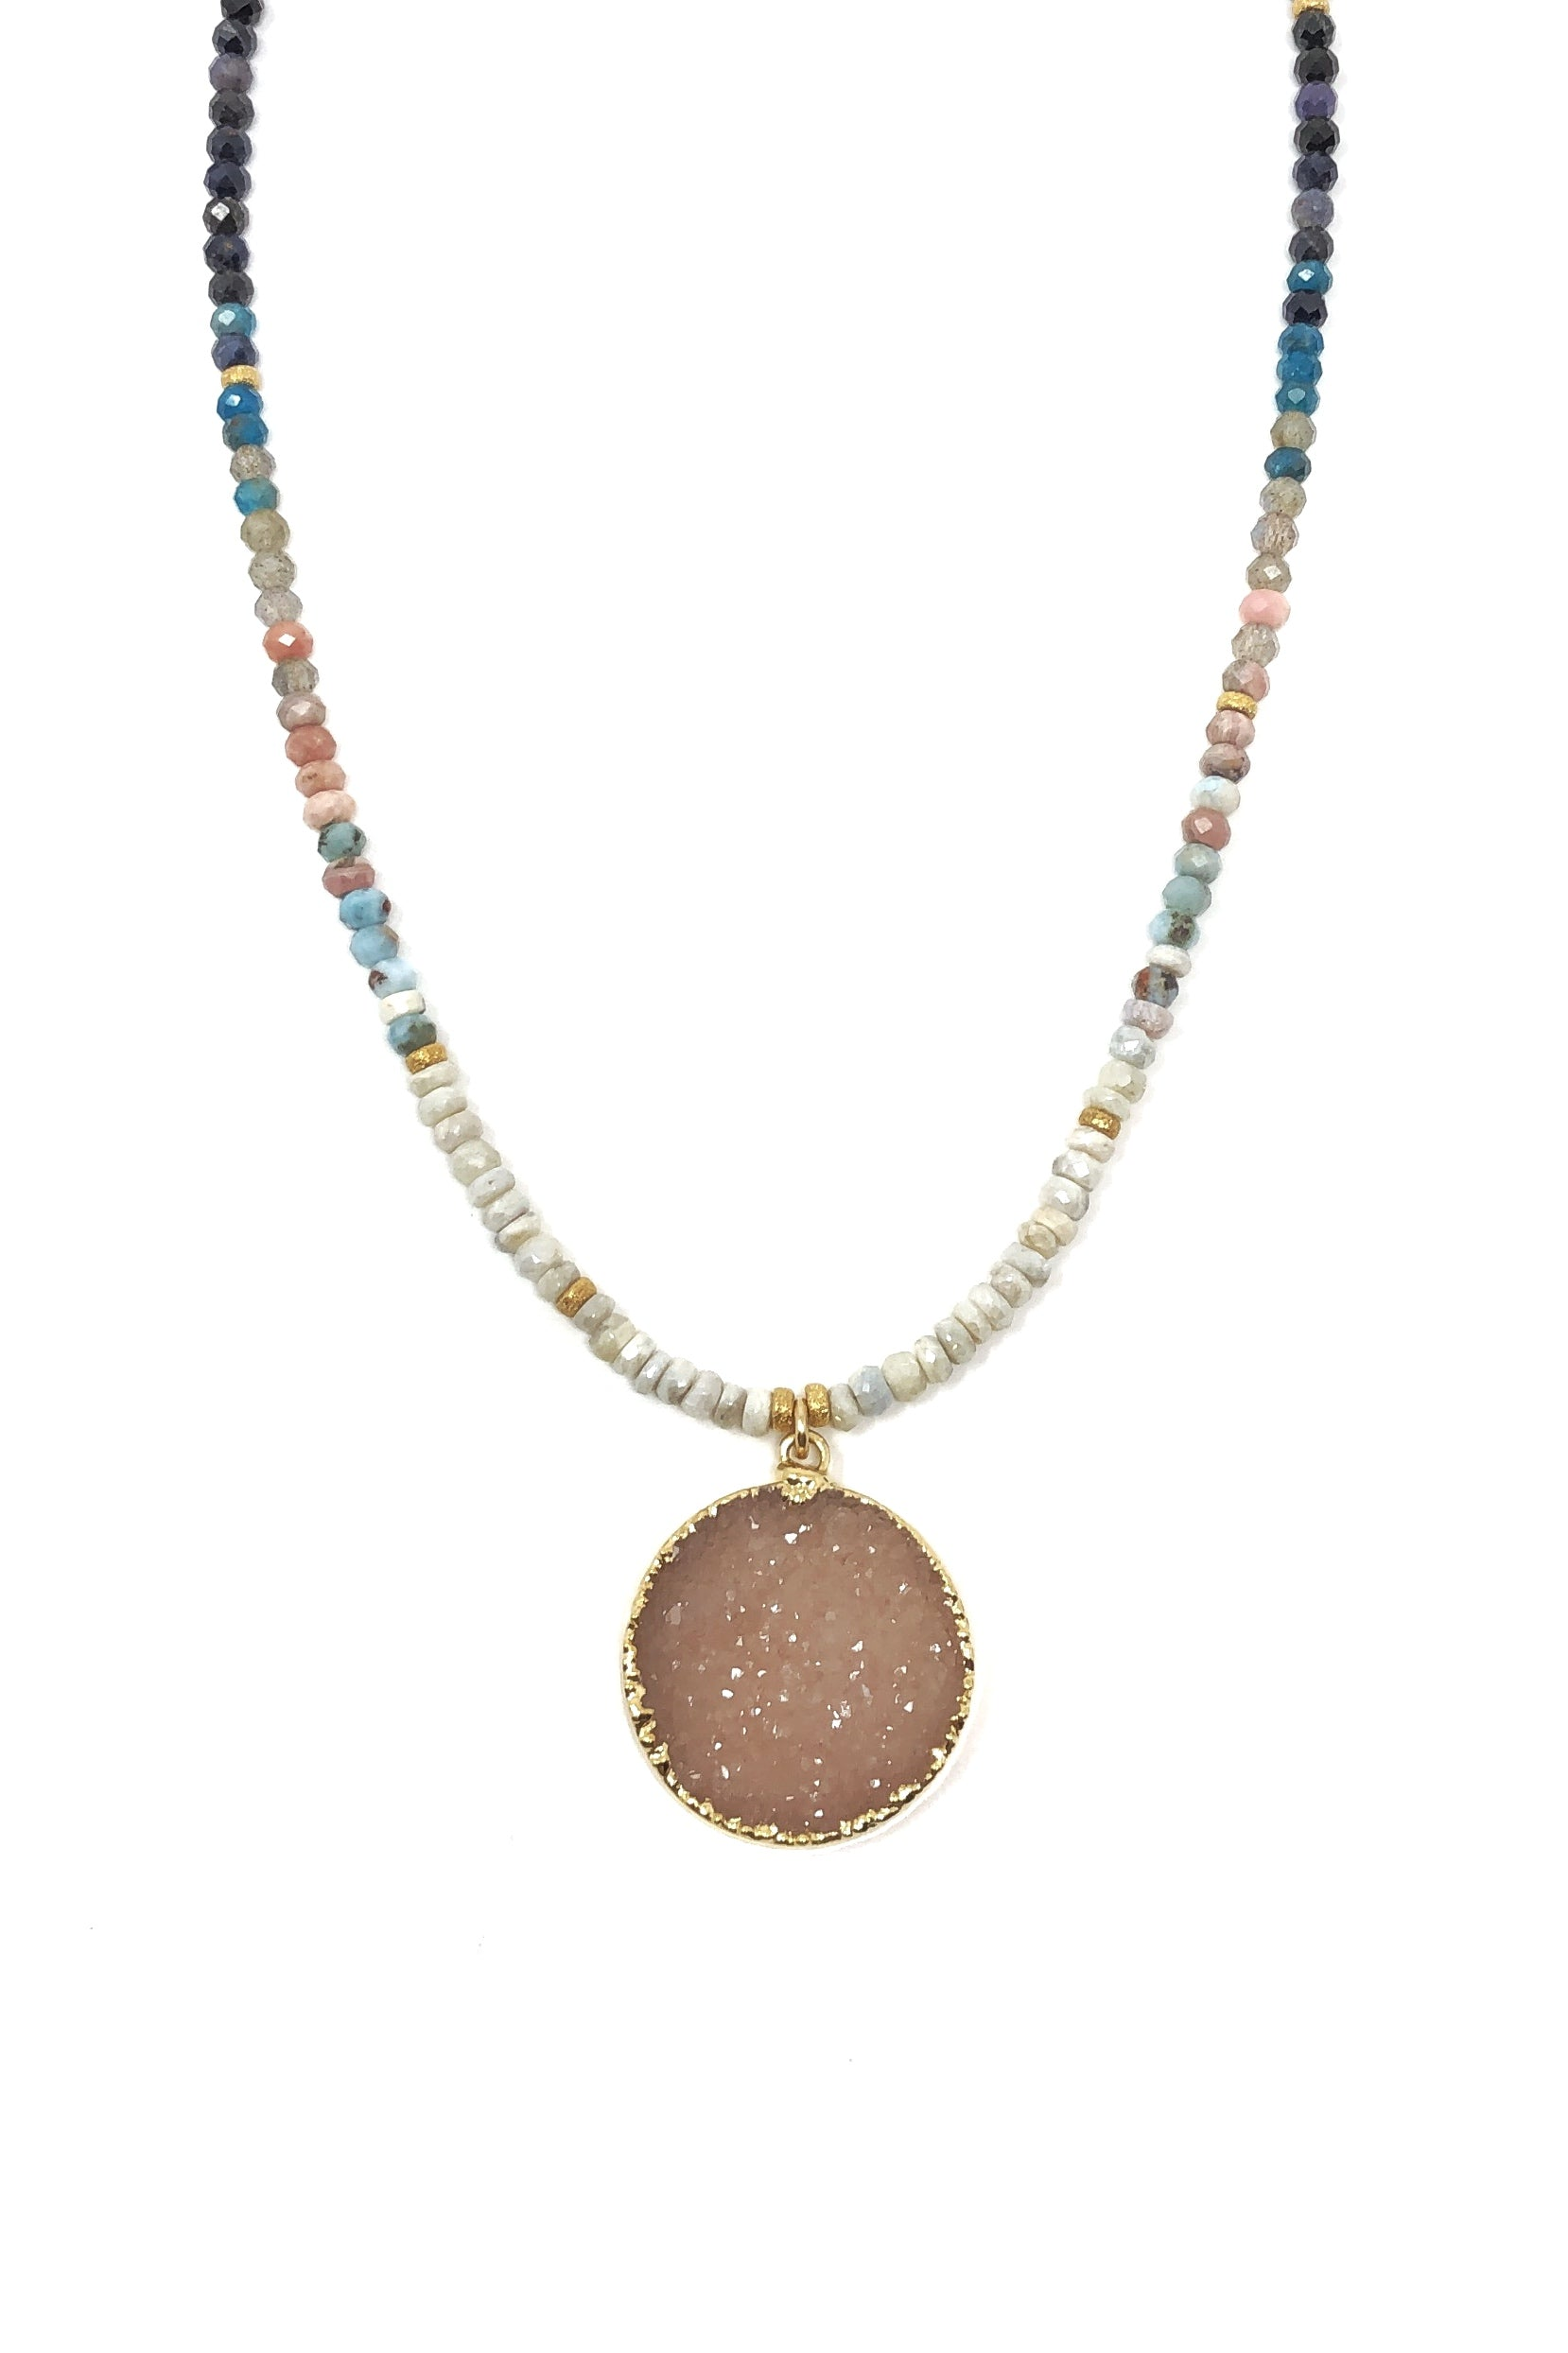 Multi-Color Gemstone and Druzy Necklace